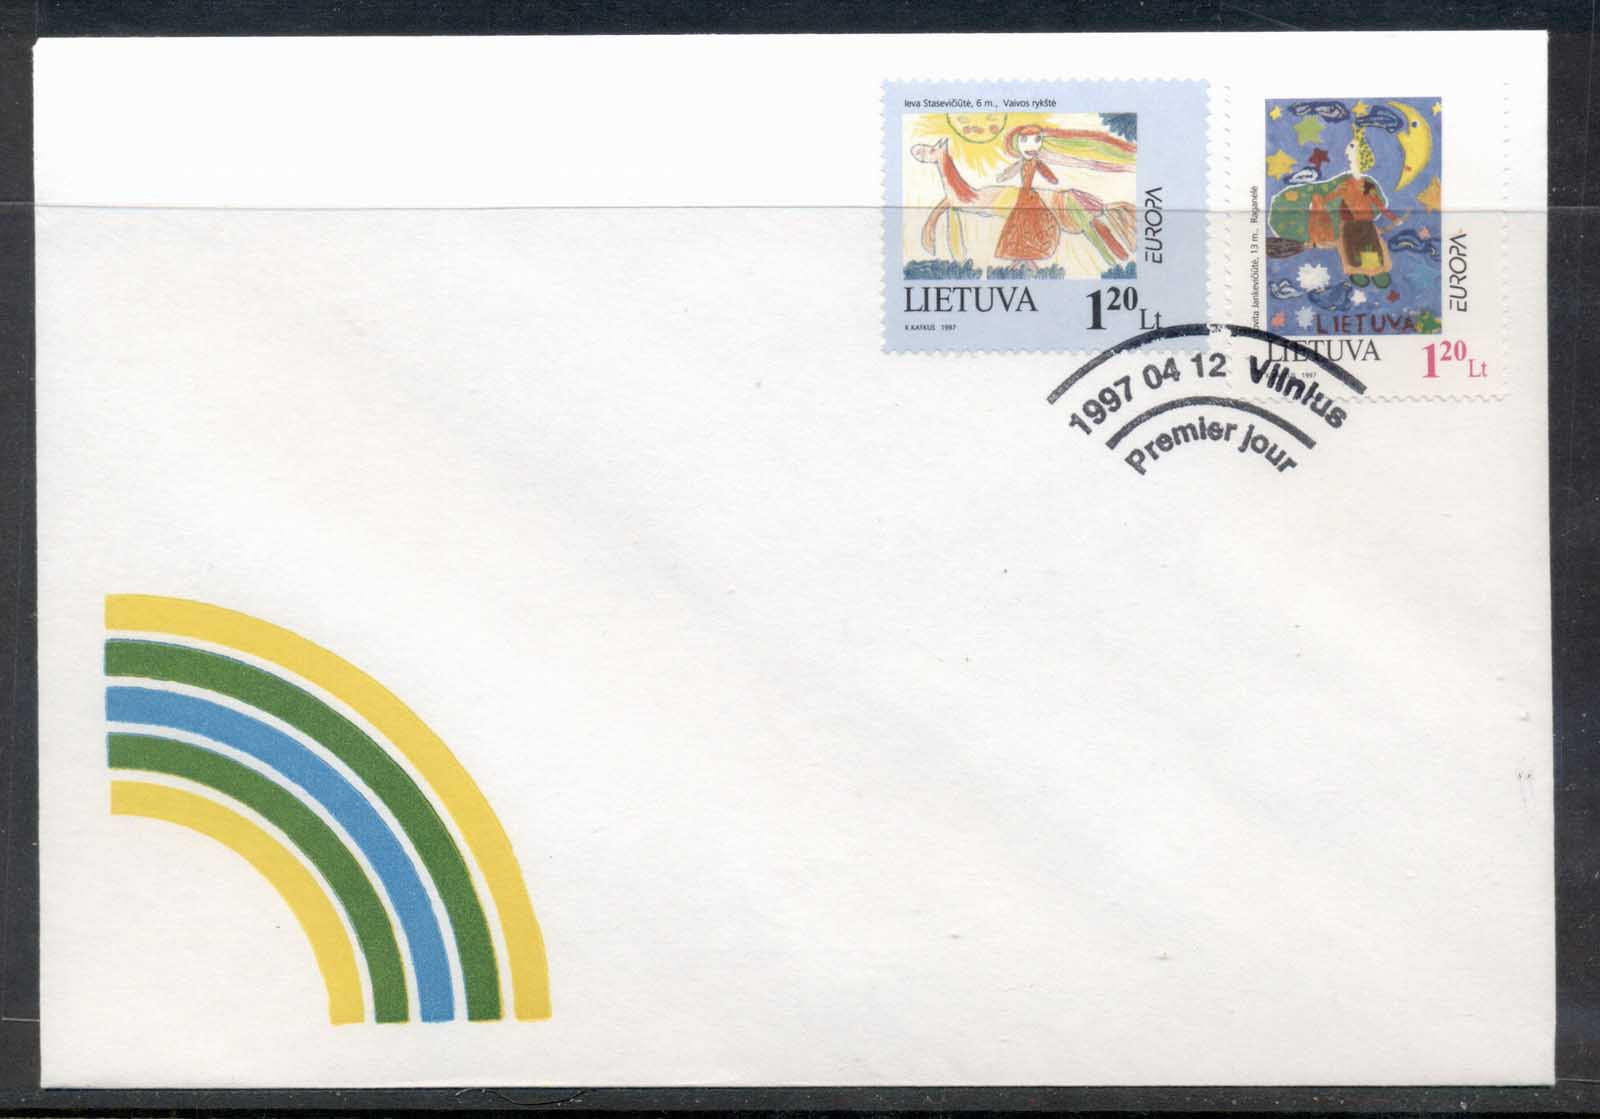 Lithuania 1997 Europa Myths & legends FDC